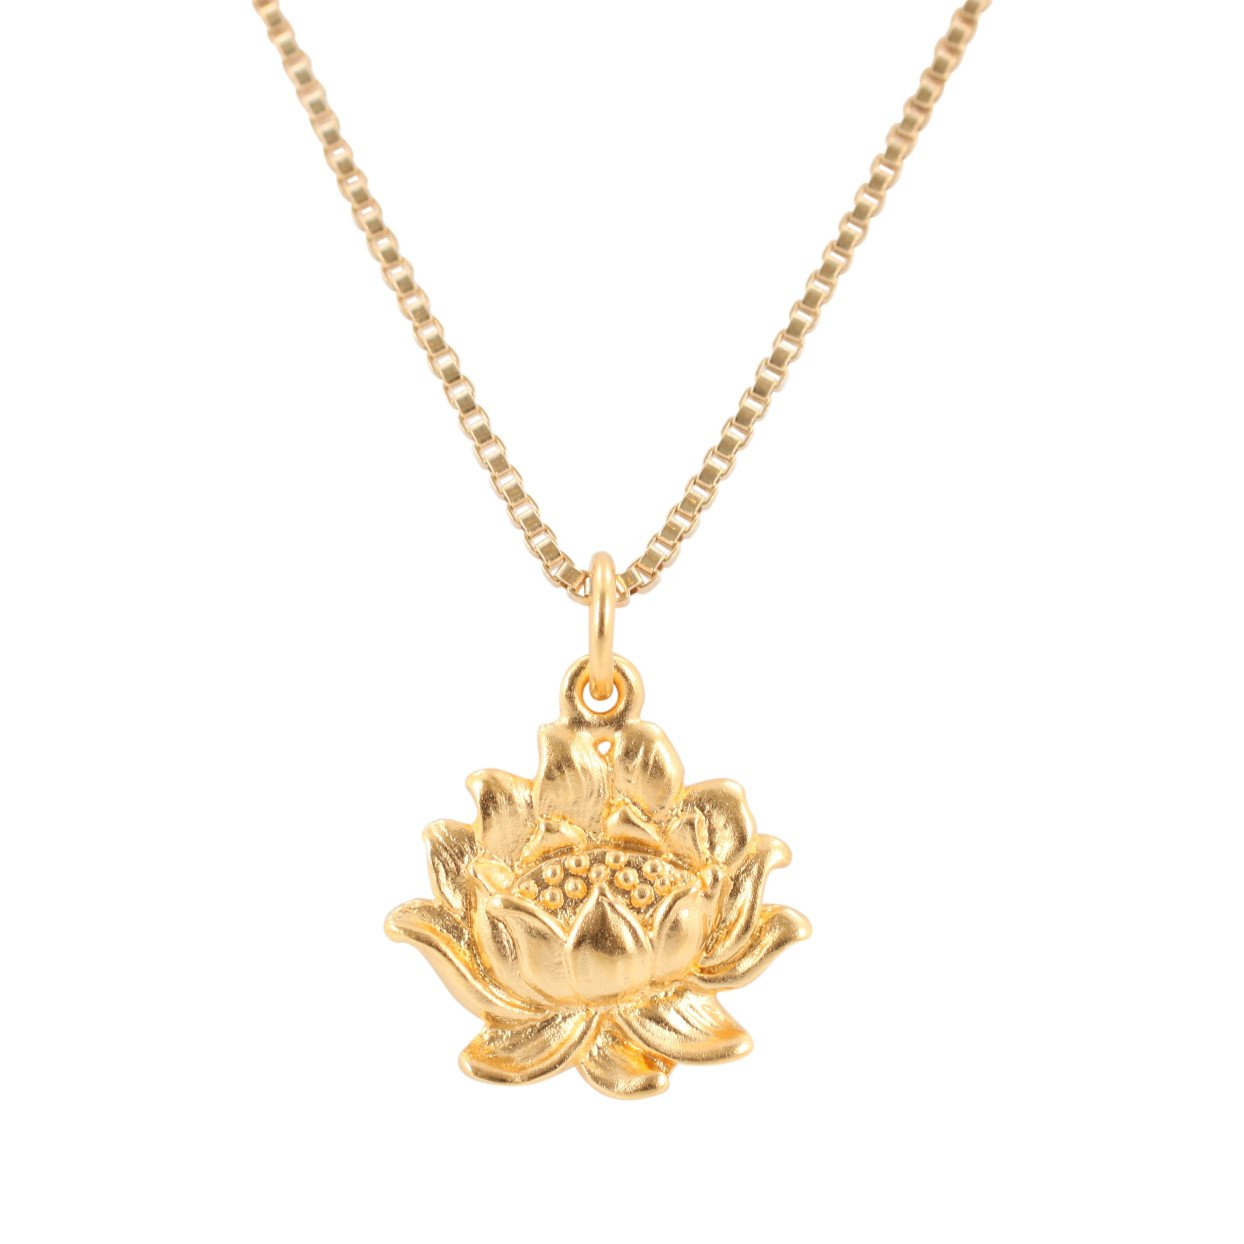 24k Gold Plated Sterling Silver Lotus Flower Necklace 7021 Yg